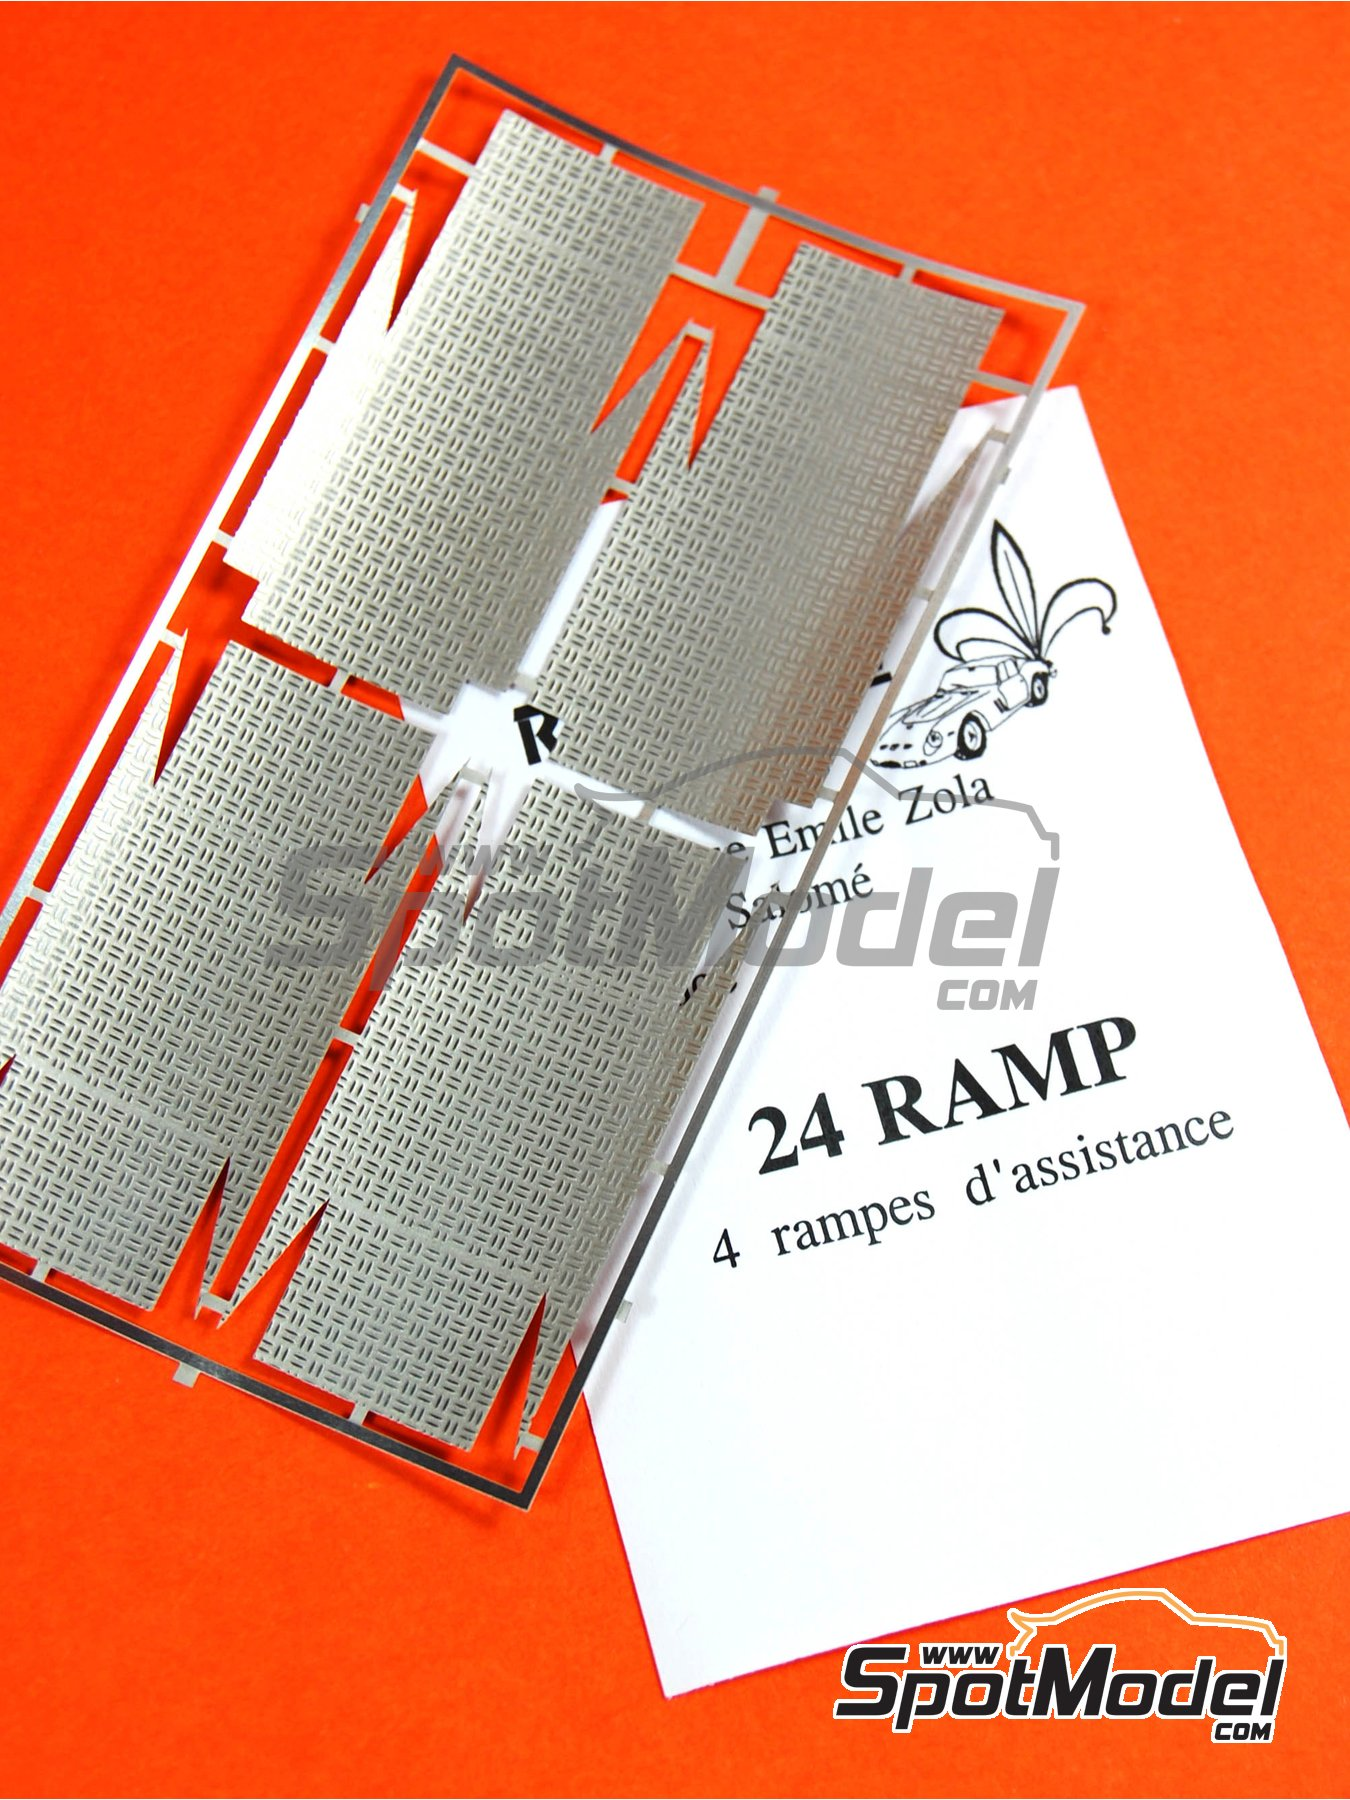 Mechanic rally ramps | Detail in 1/24 scale manufactured by Renaissance Models (ref. 24RAMP) image